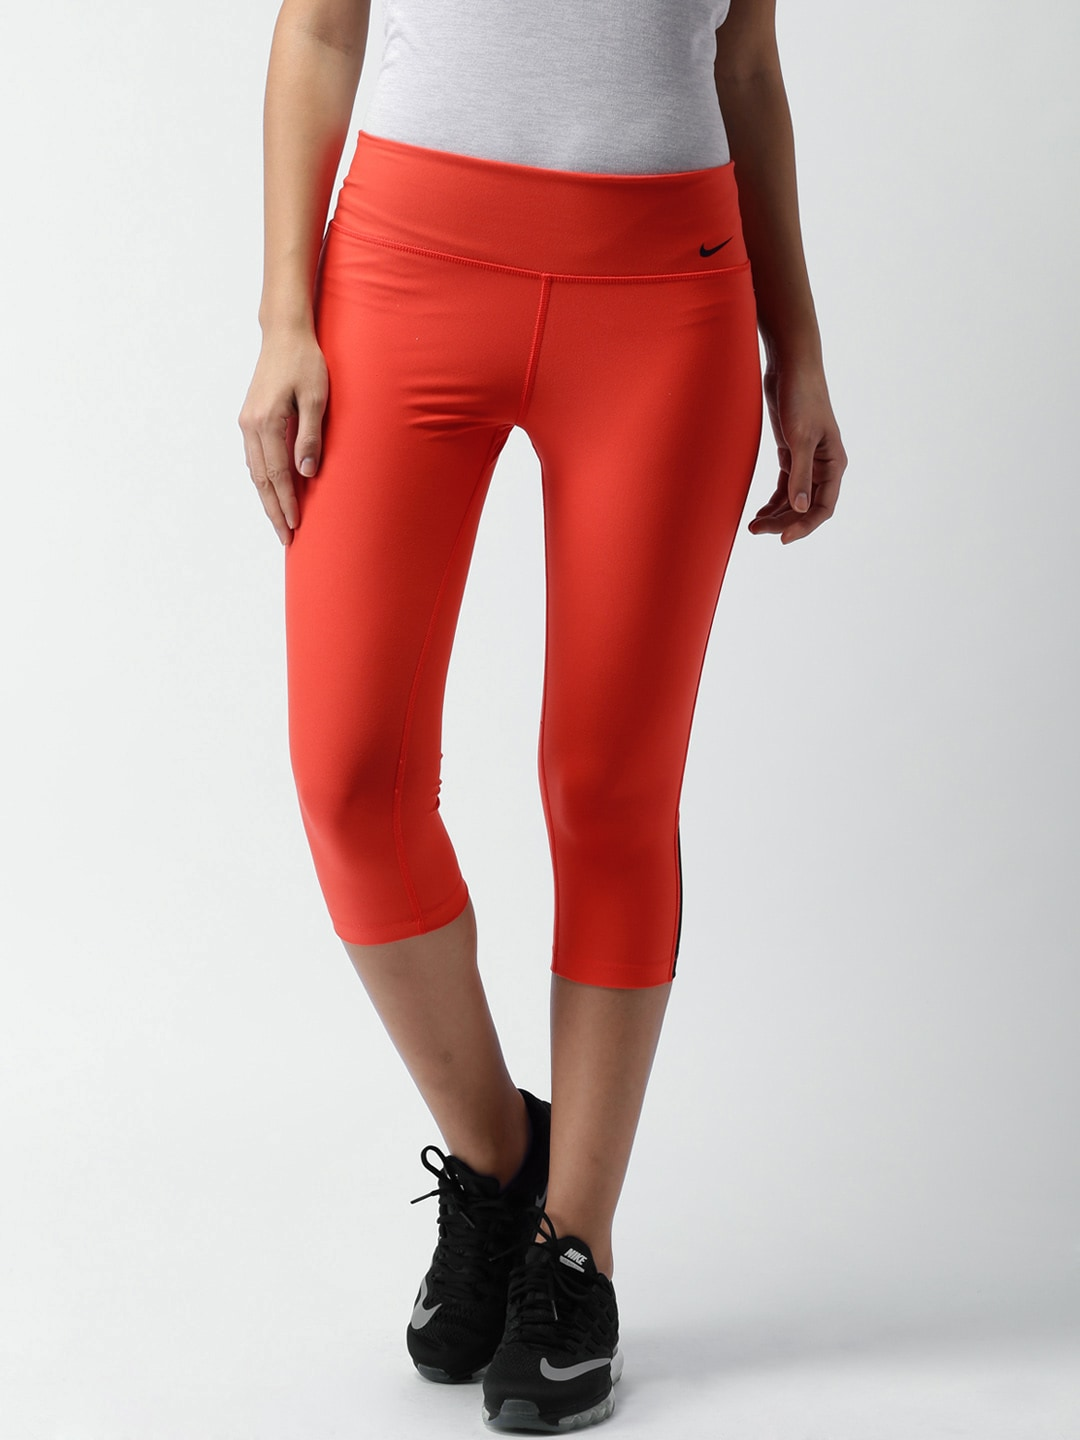 Nike Coral Red AS PWR LGND OVRDRVE Capris image